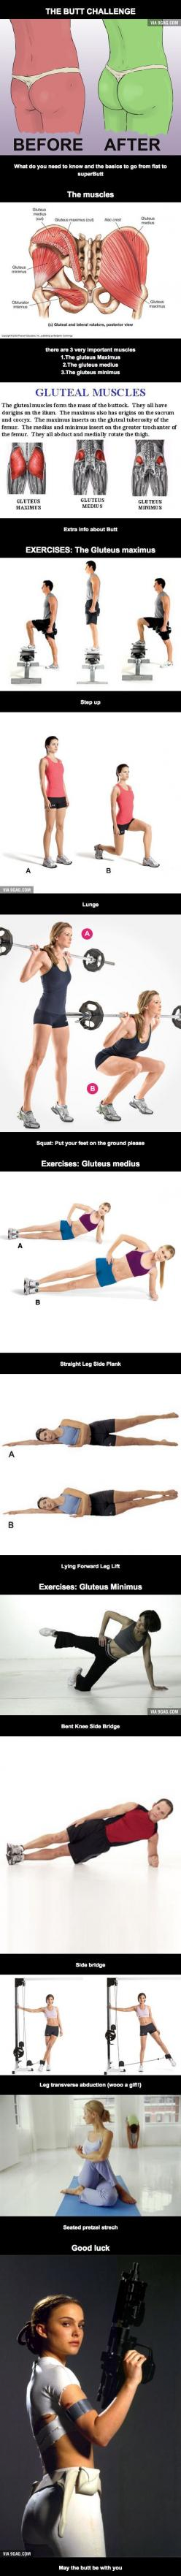 The site that's related to this is not more about the picture but this is great!: Fitness, Booty Exercise, Butt Exercise, Butt Challenge, Butt Workouts, Work Out, Booty Workout, Butt Excercise